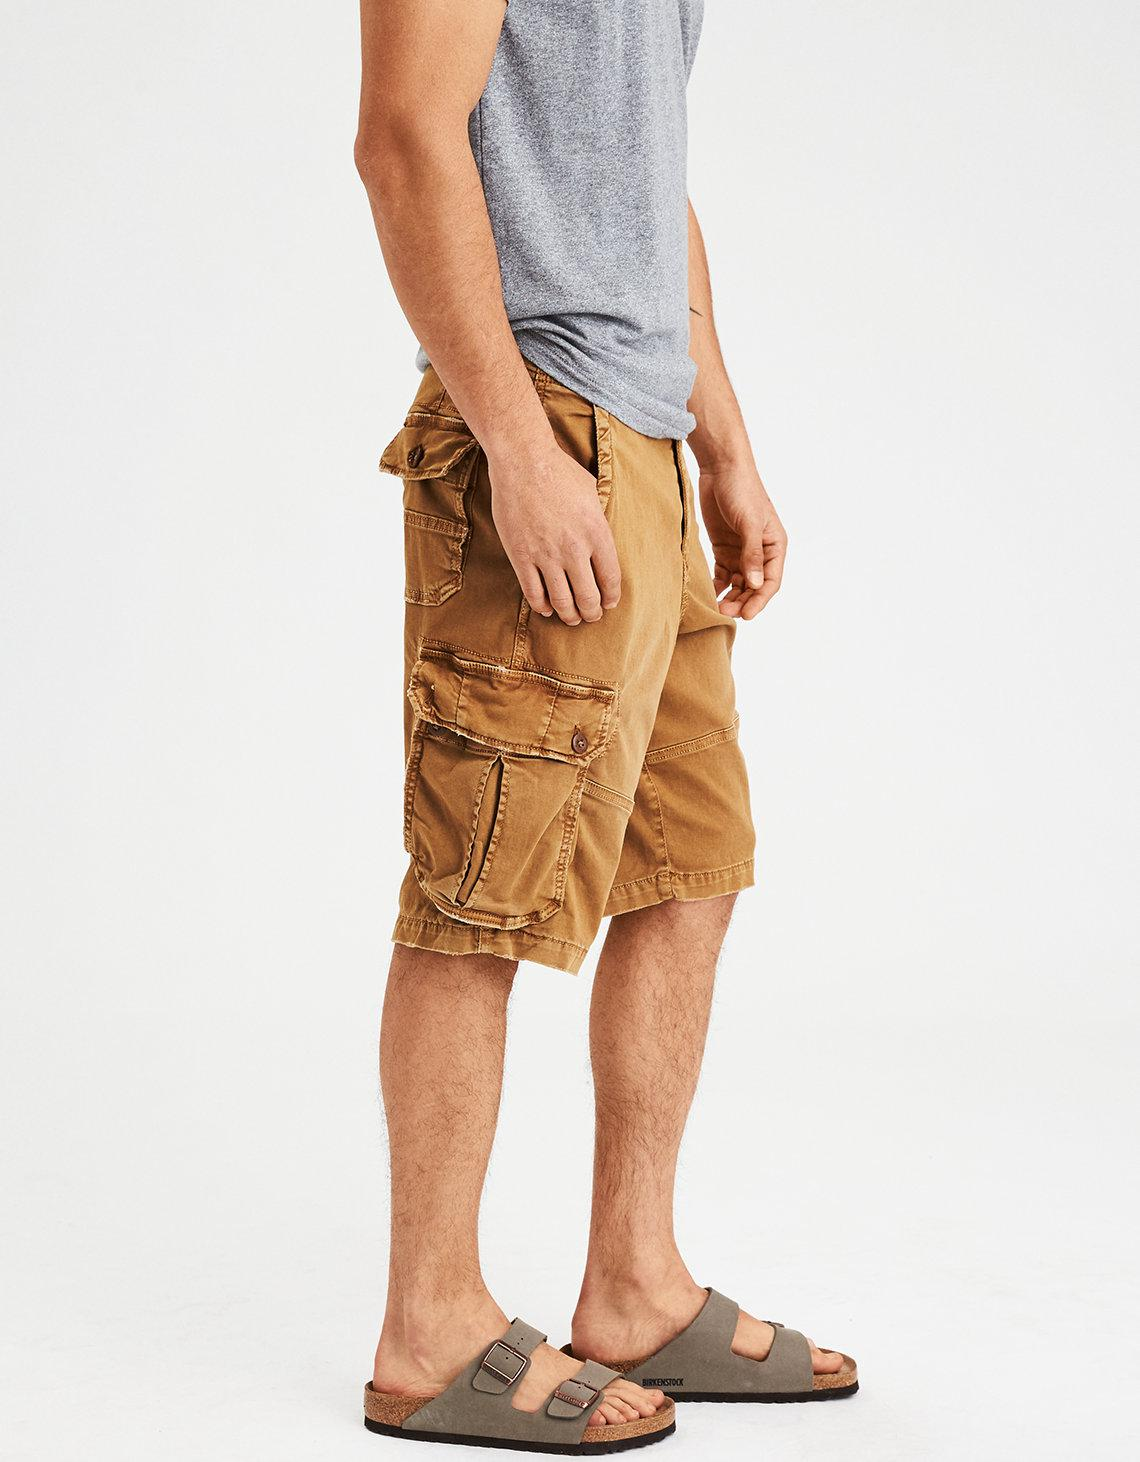 7af34d37ee American Eagle Ae Extreme Flex Classic Cargo Short in Natural for ...